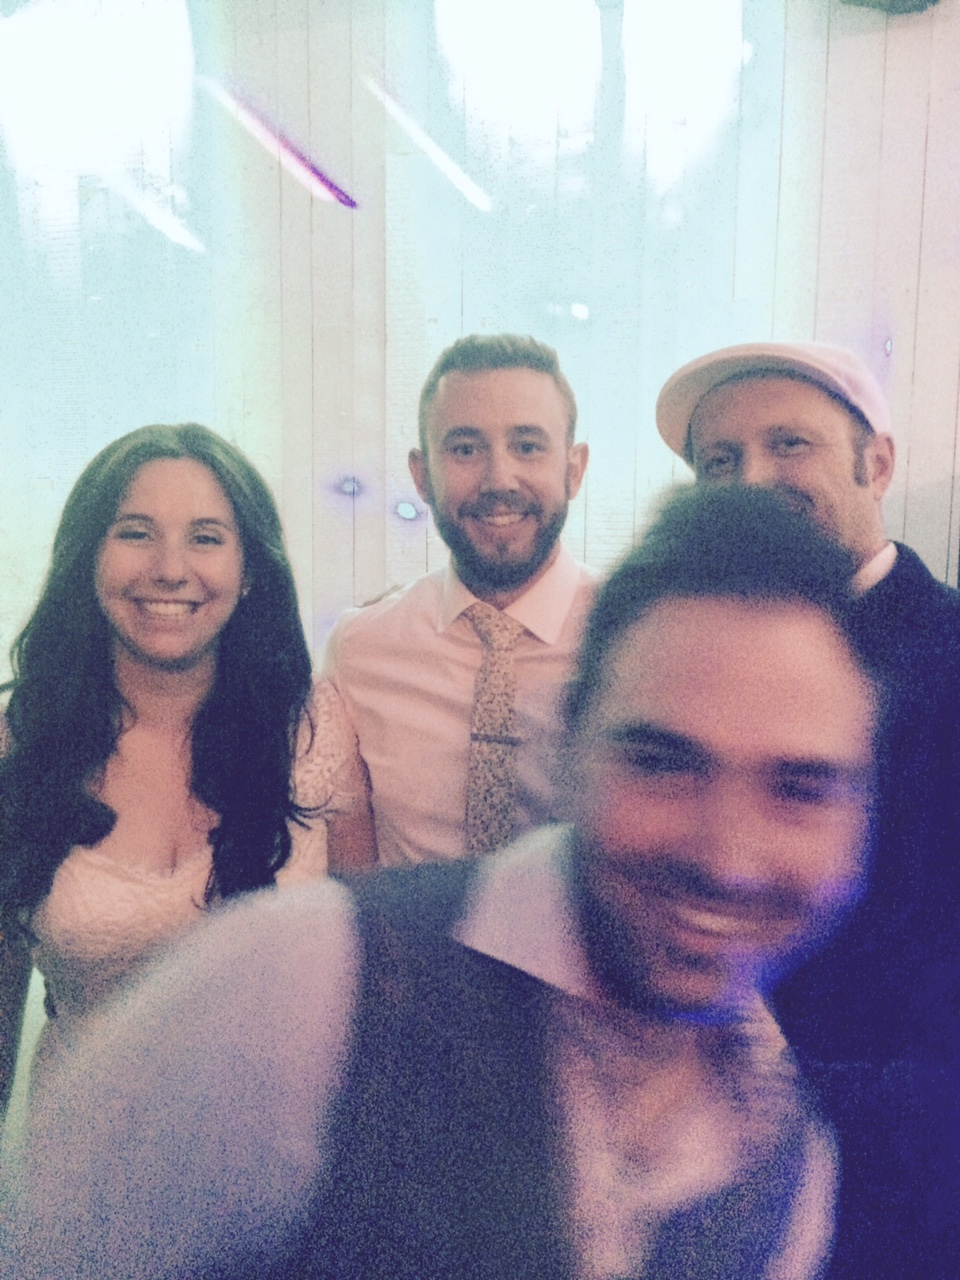 Photobombed Berkeley Wedding Venue Toronto Entertainment Del Vinyl.jpg